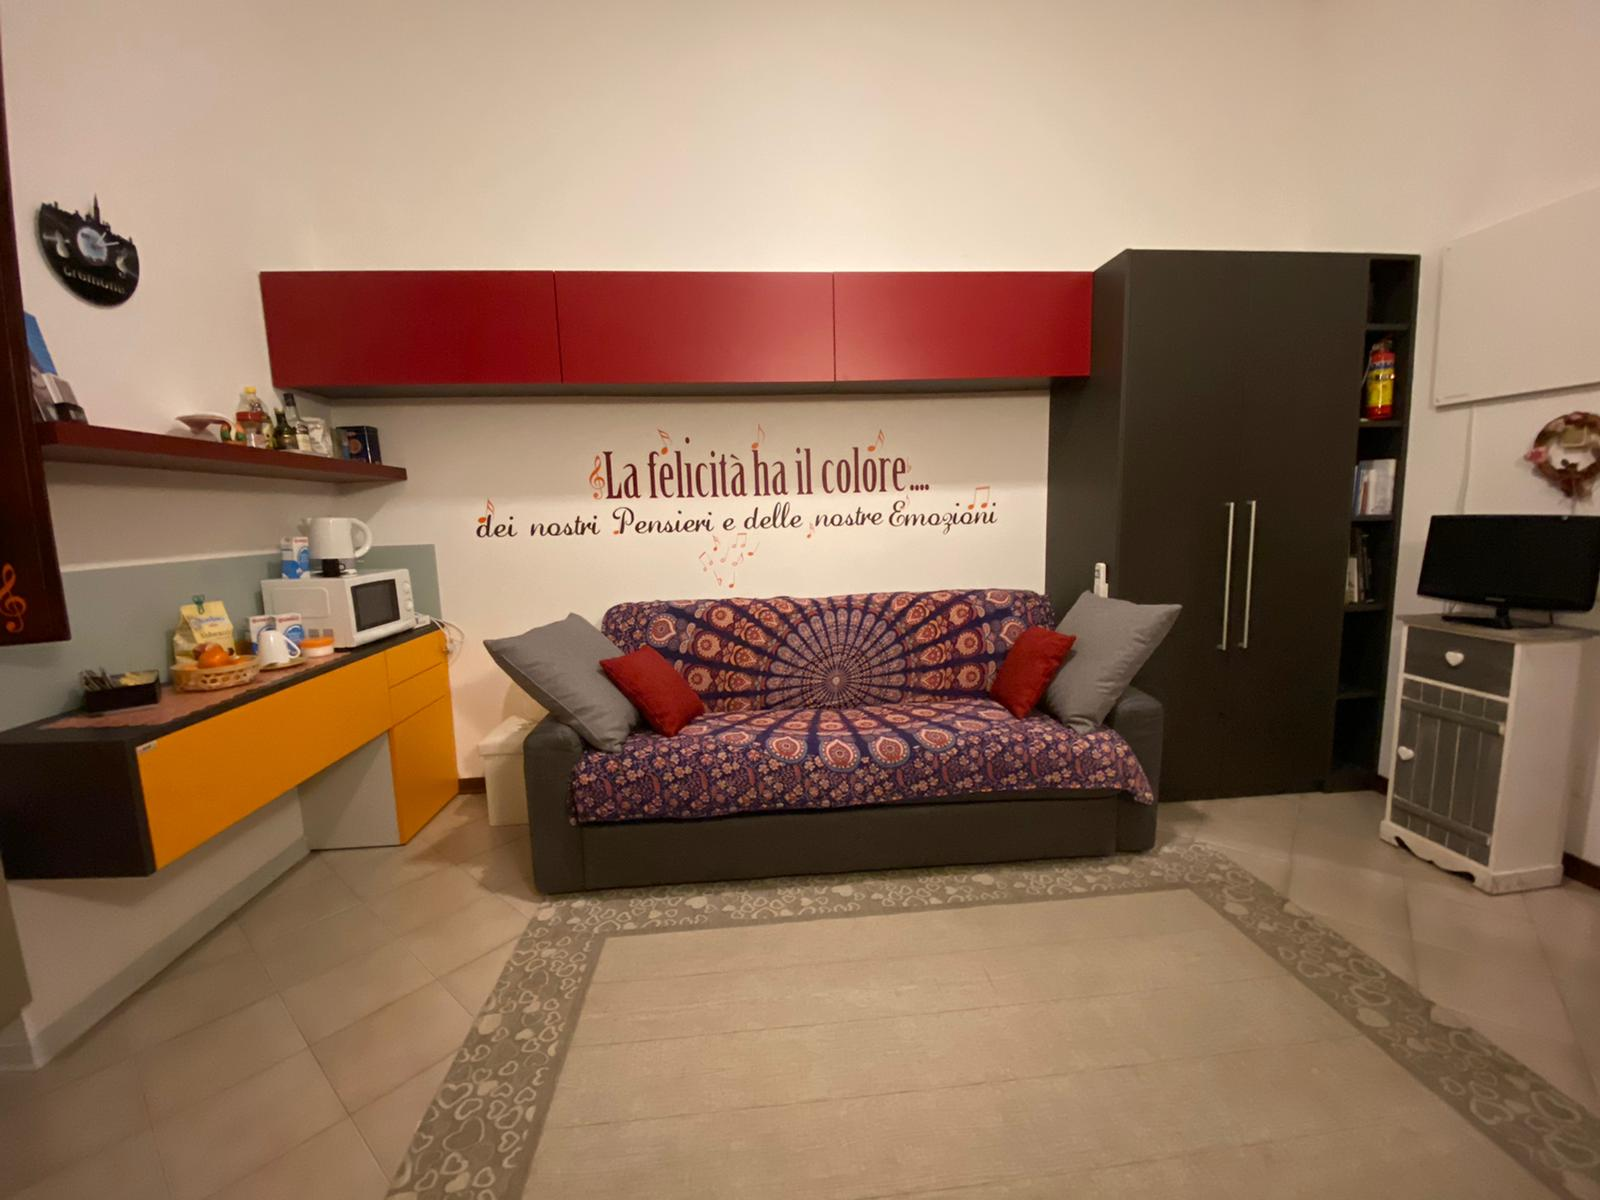 https://www.in-lombardia.it/sites/default/files/accomodation/gallery/107356/44708/cosy-studio-cremona_4.jpg